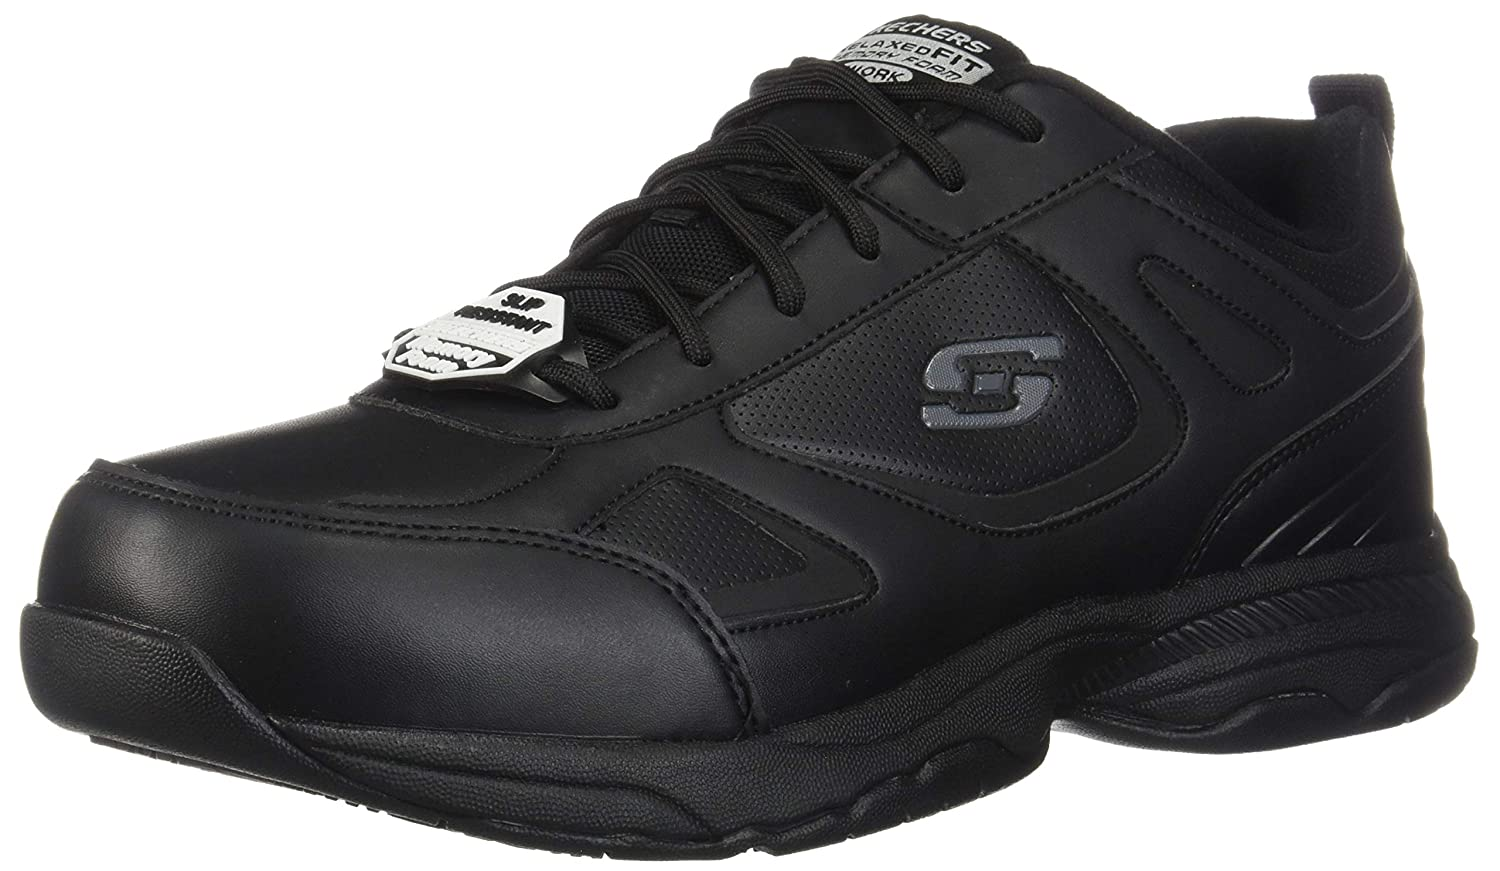 Skechers Work Men's Dighton Work schuhe,schwarz,7.5 M US